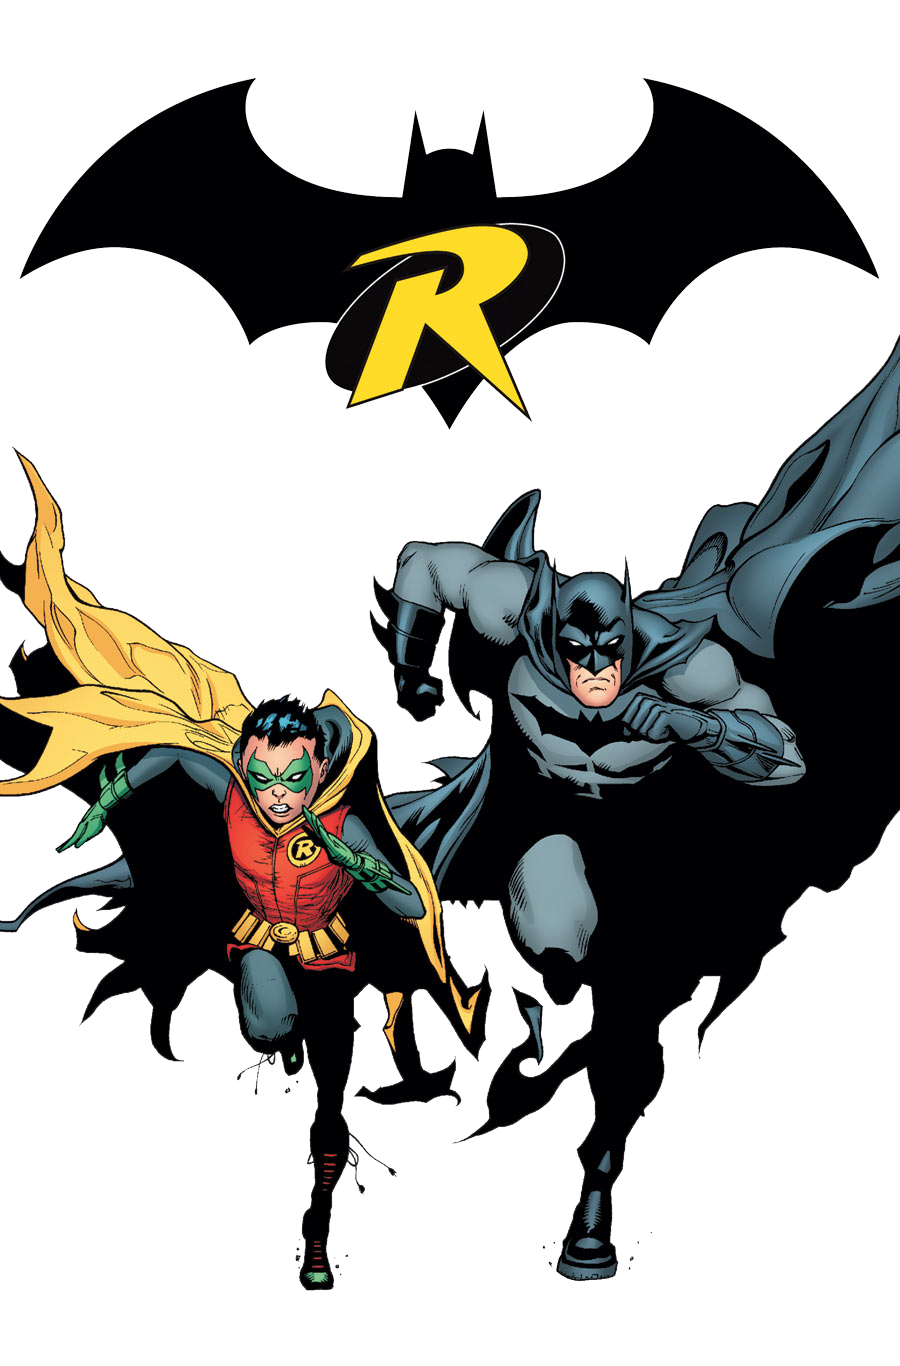 damian robin wayne dick batman grayson batman and robin clipart png rh clipart info batman and robin symbol clip art